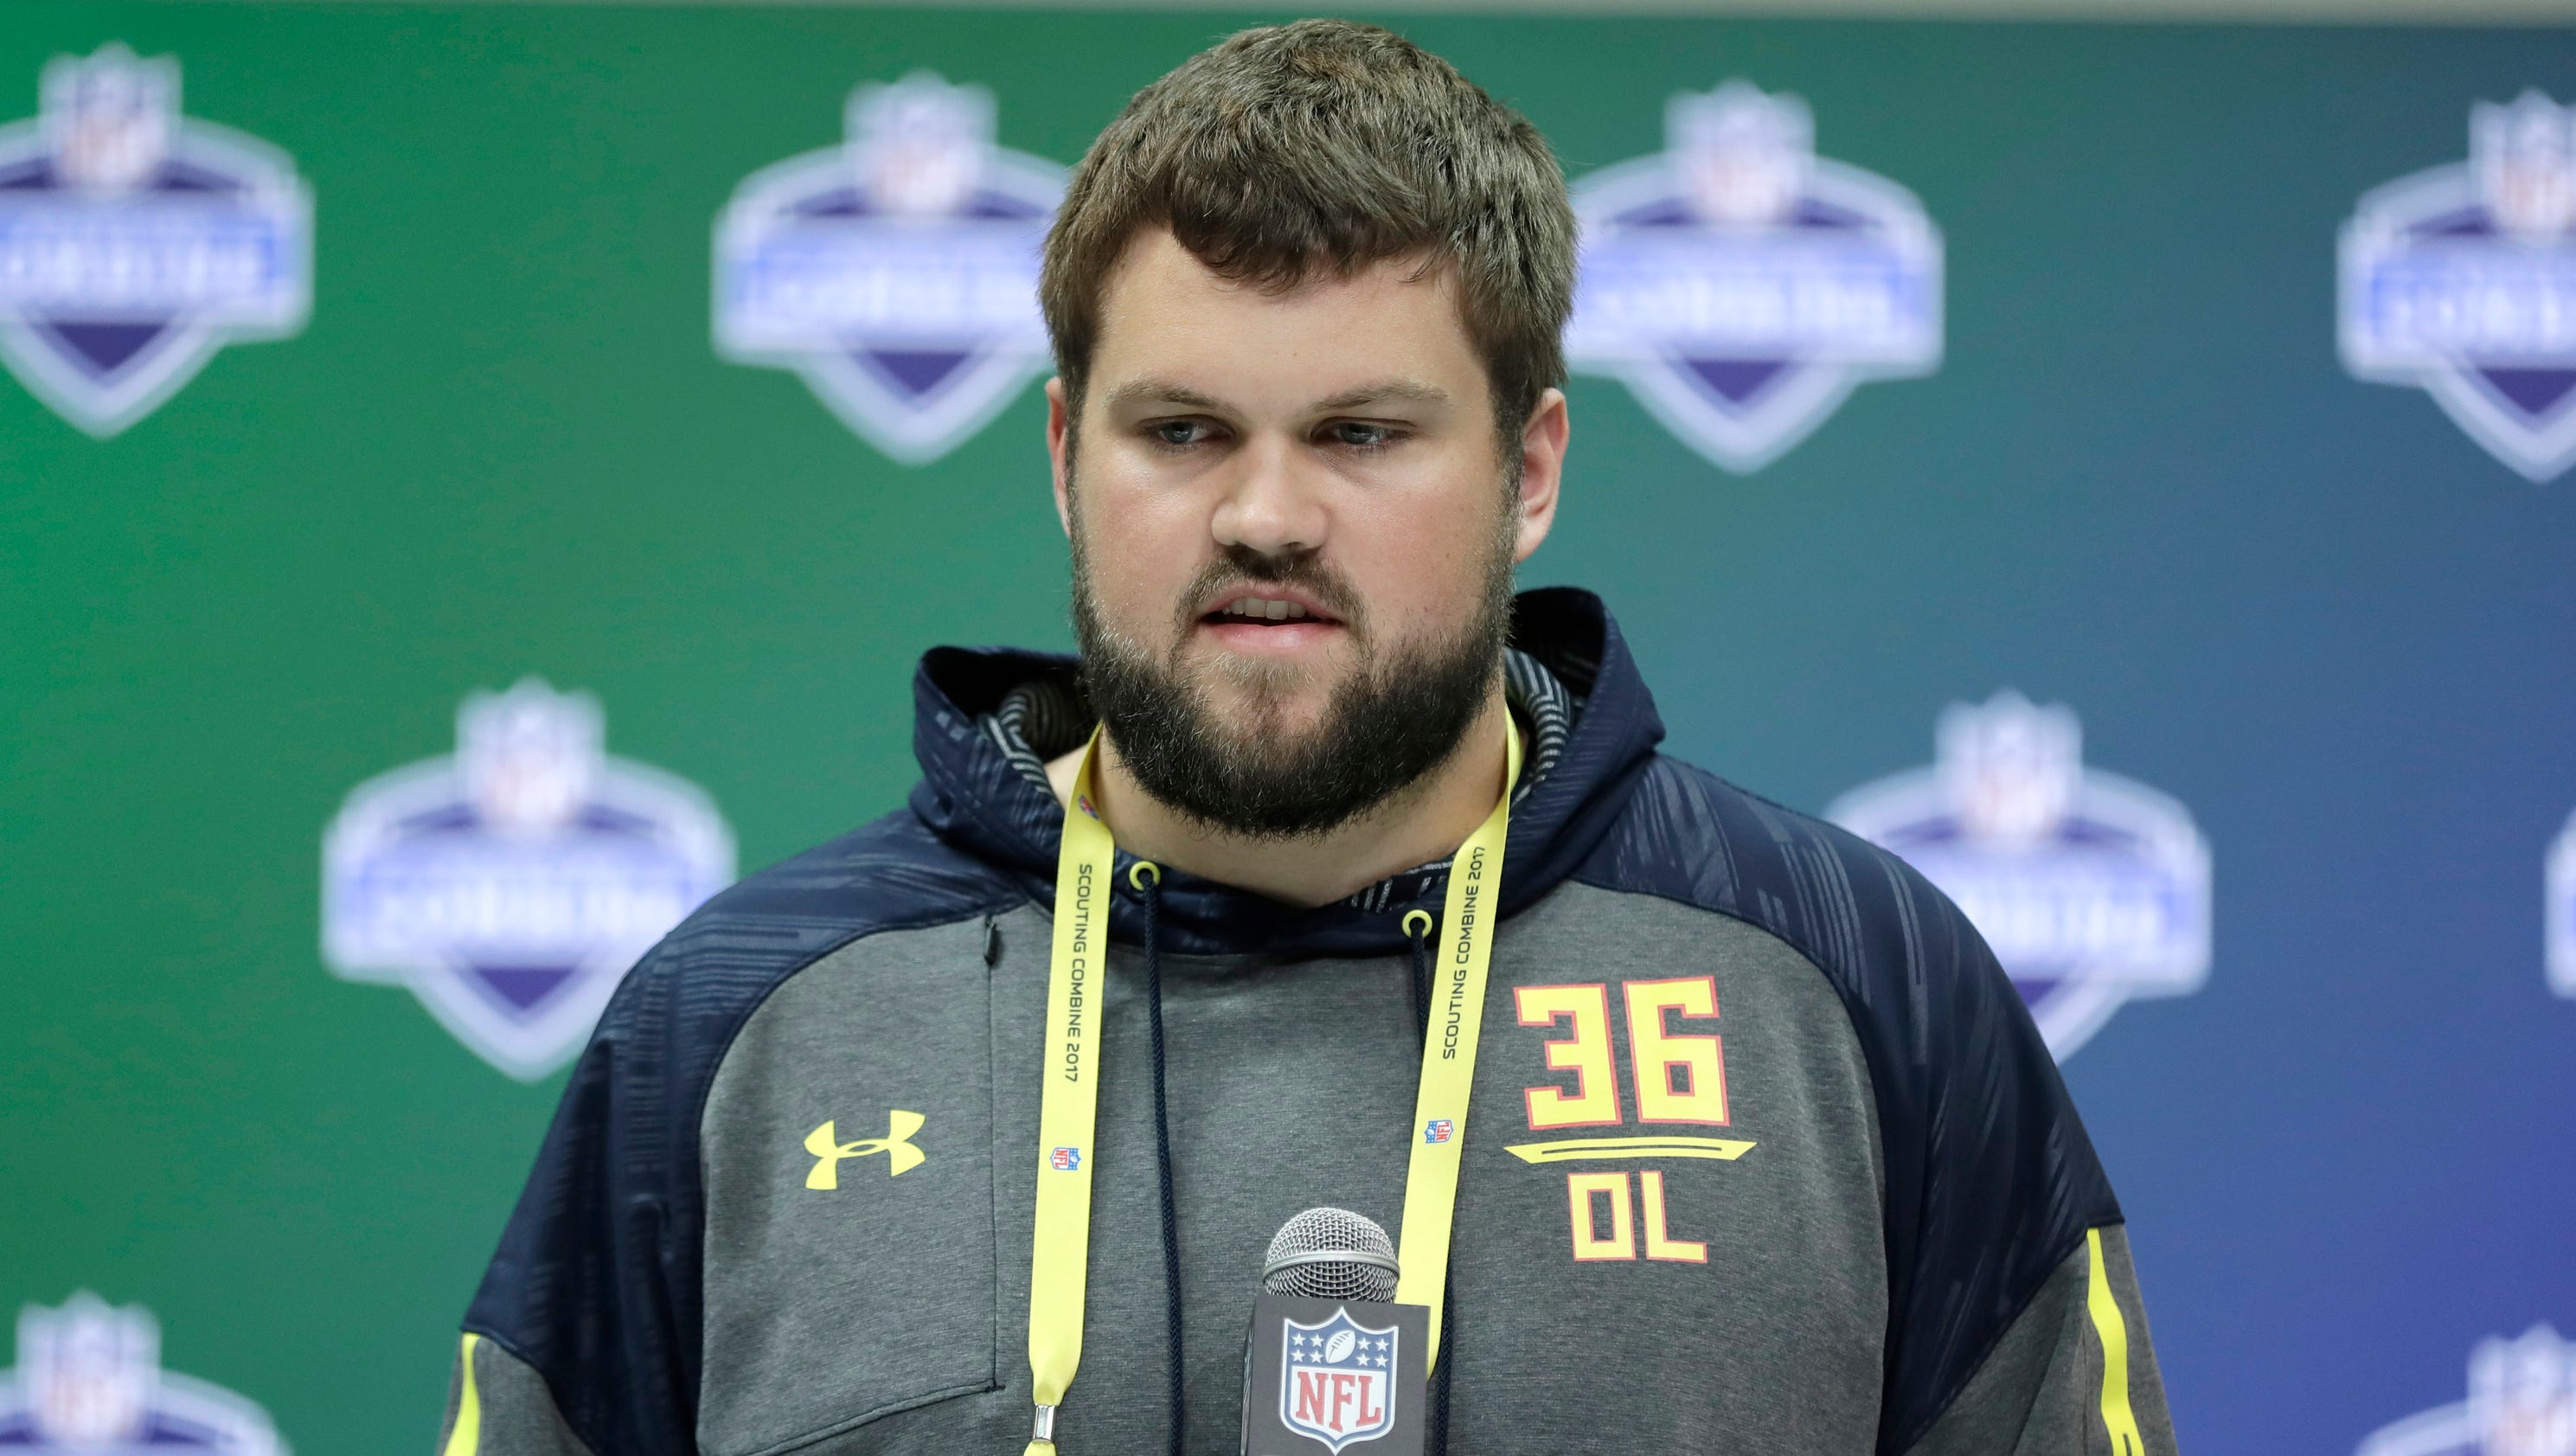 636282322192900511-ap-nfl-combine-football